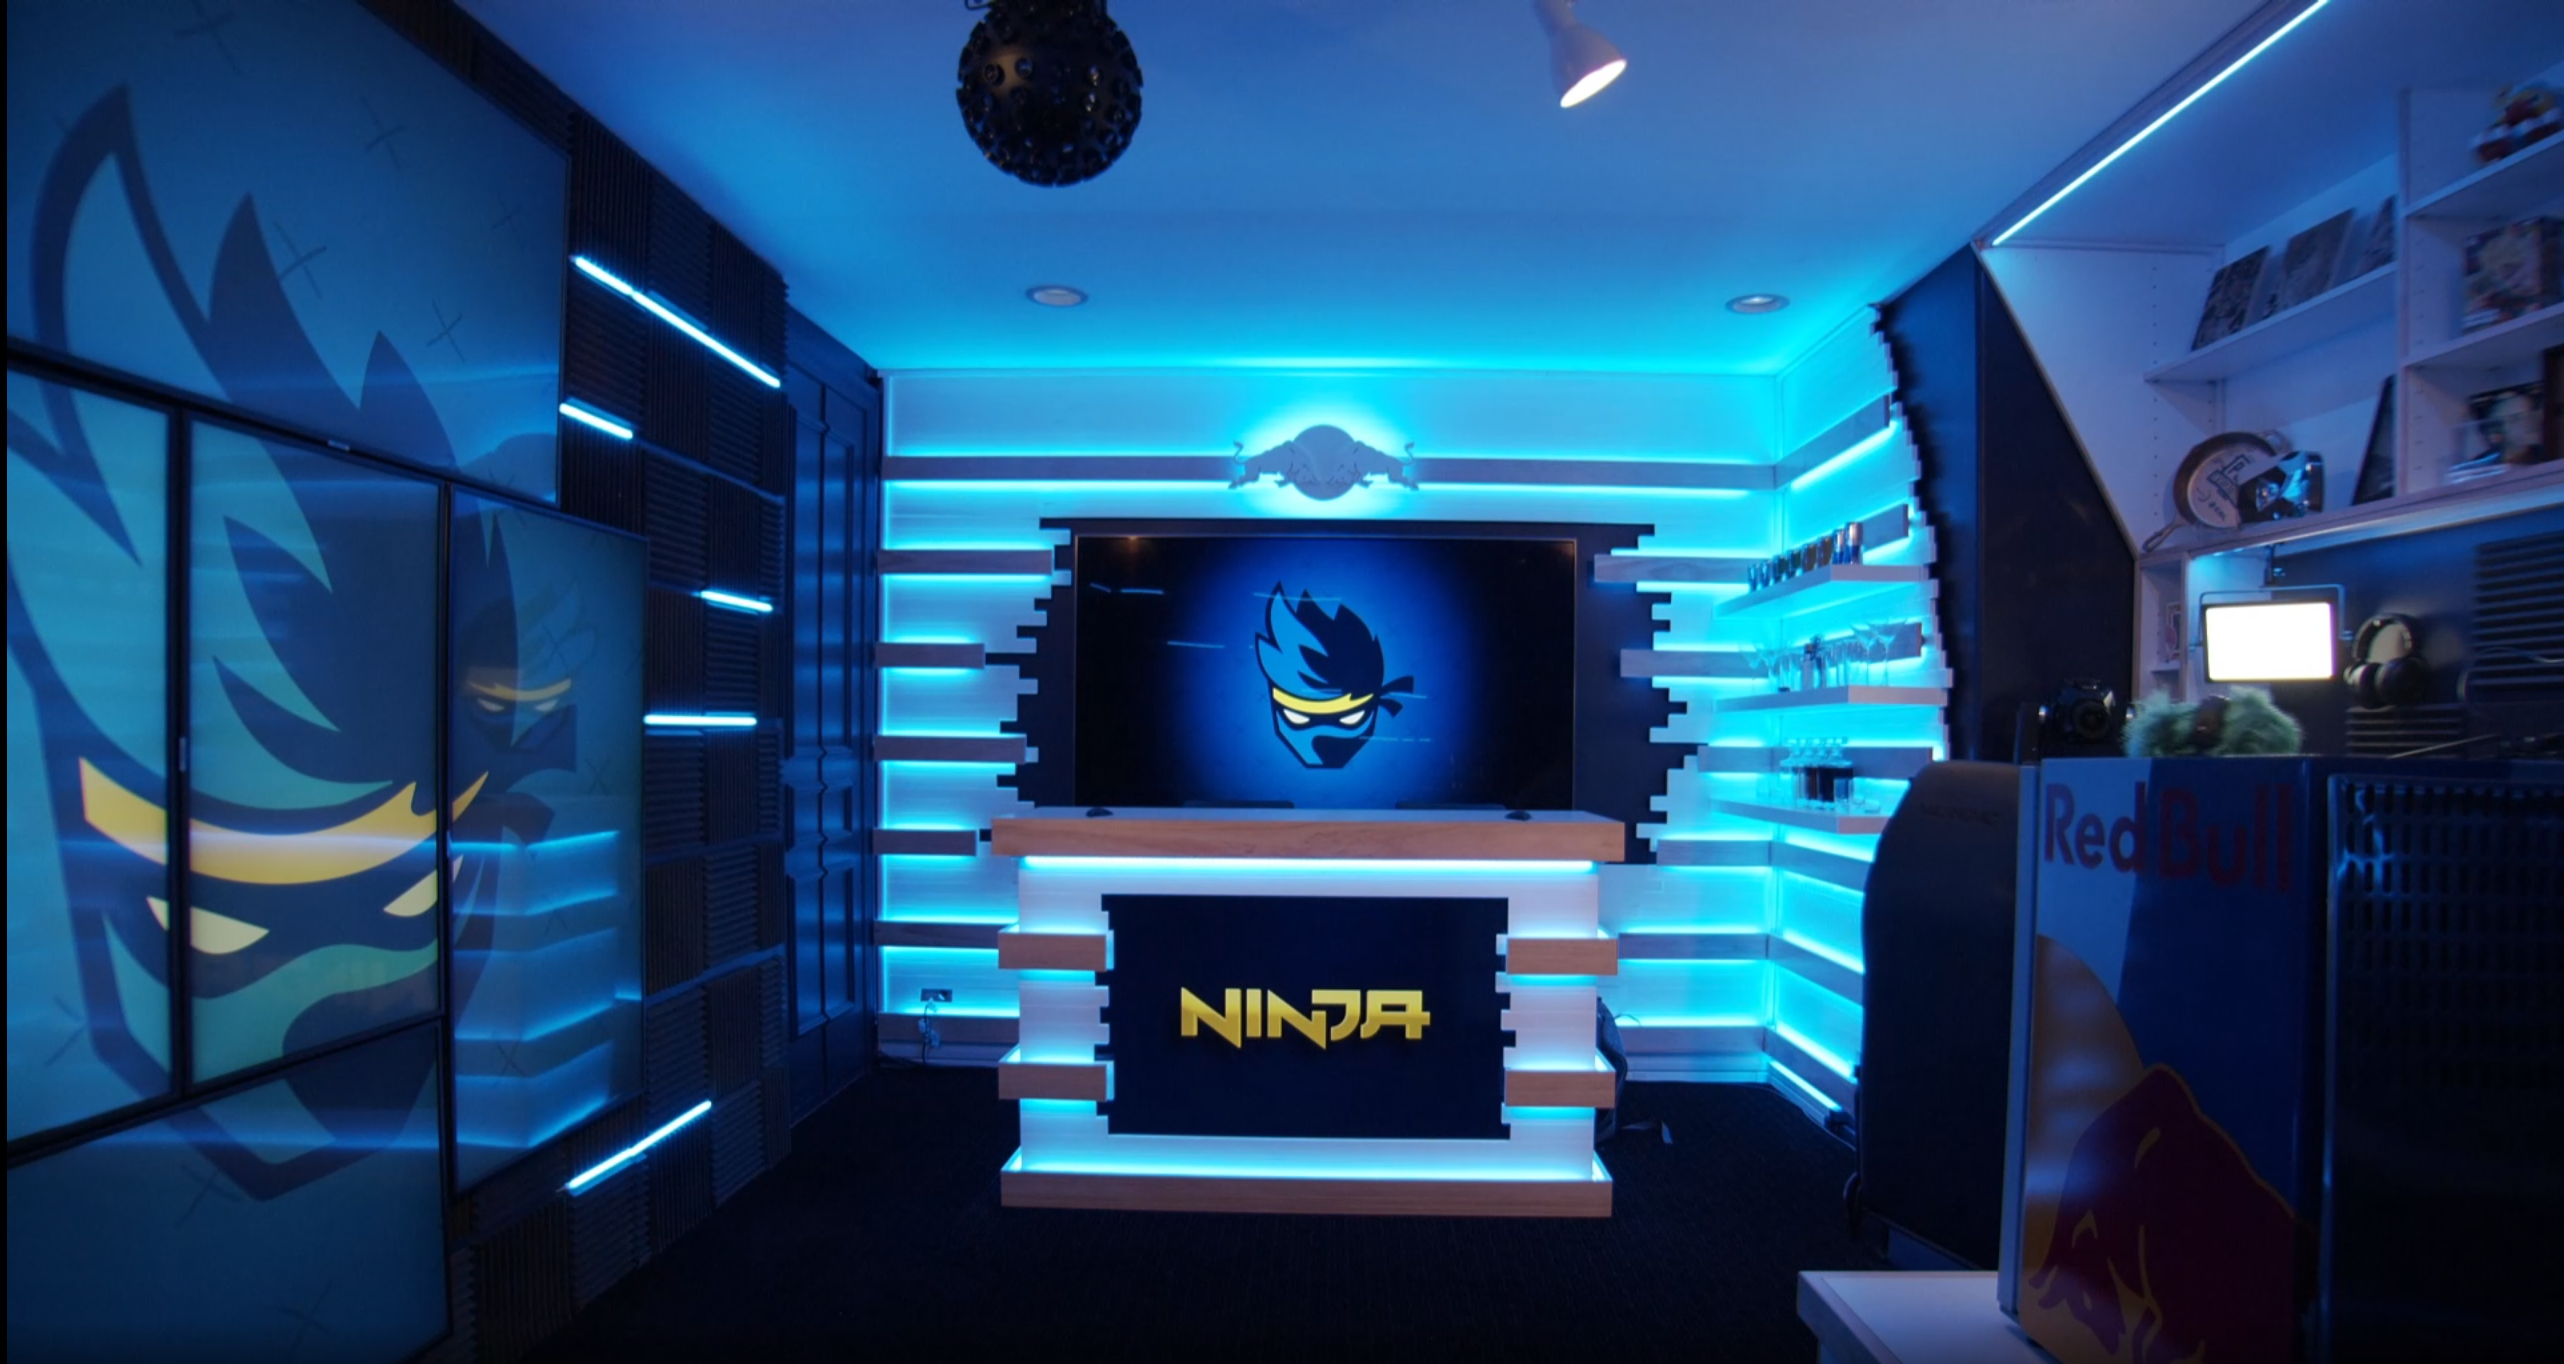 Ninja's New Streaming Room (Stream Capture) in 2019 | Game ...